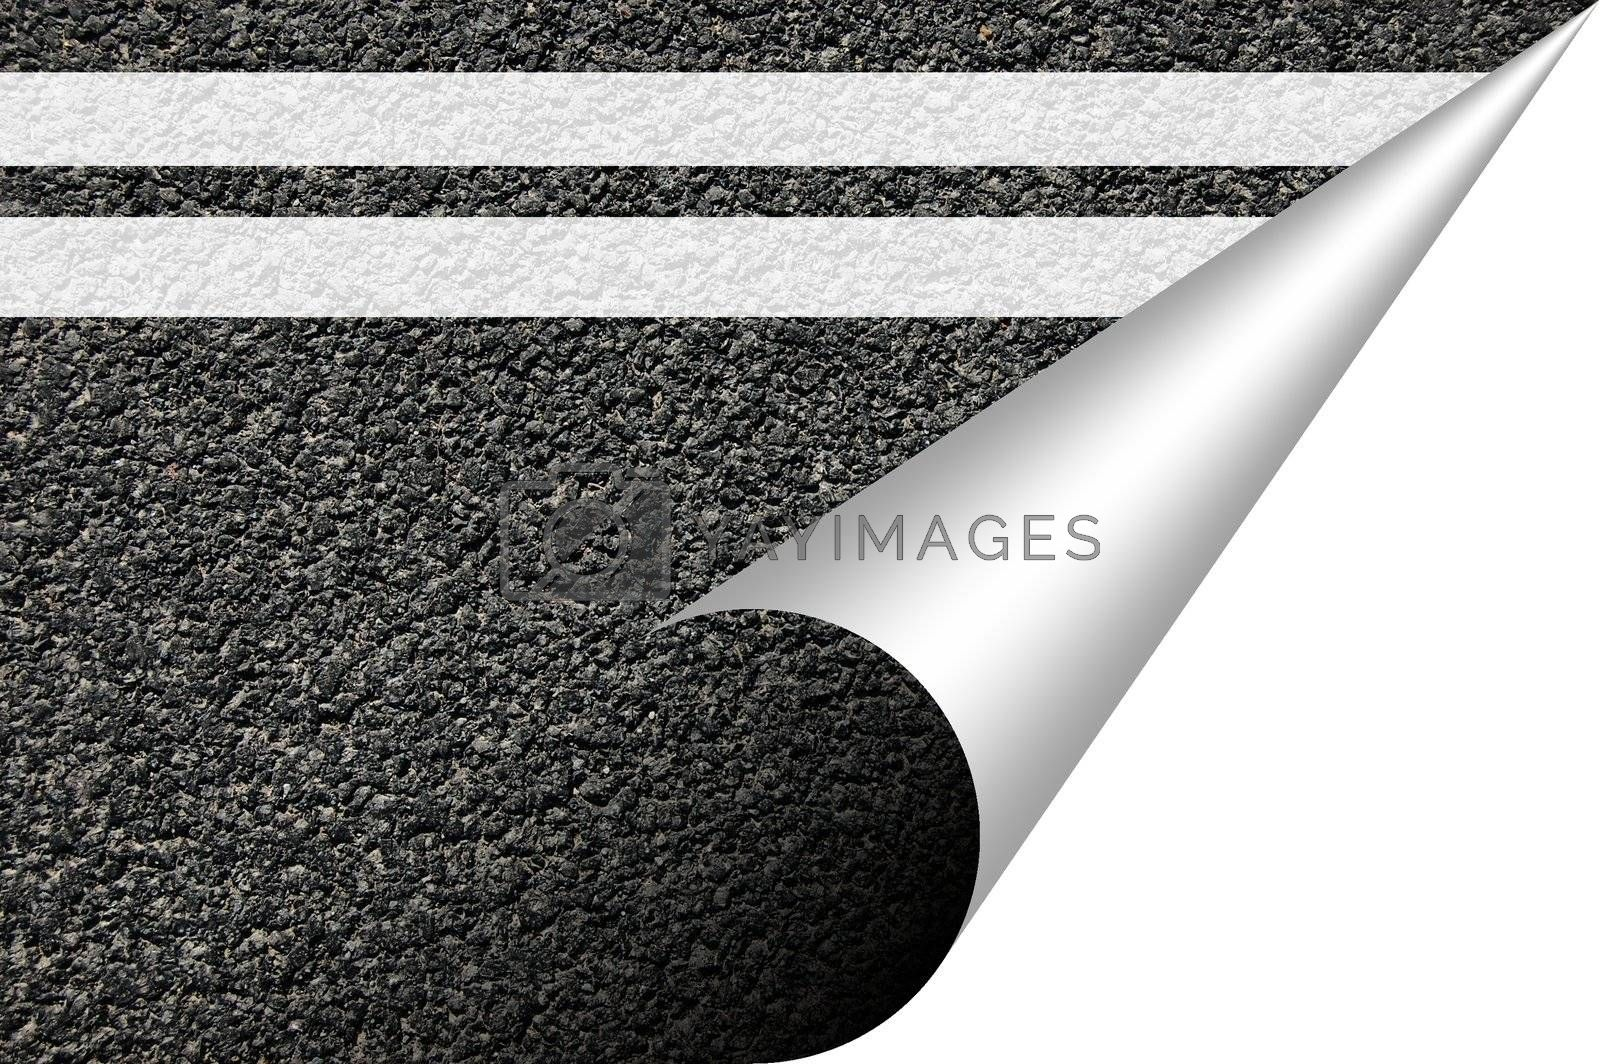 black asphalt texture with corner and copyspace for text